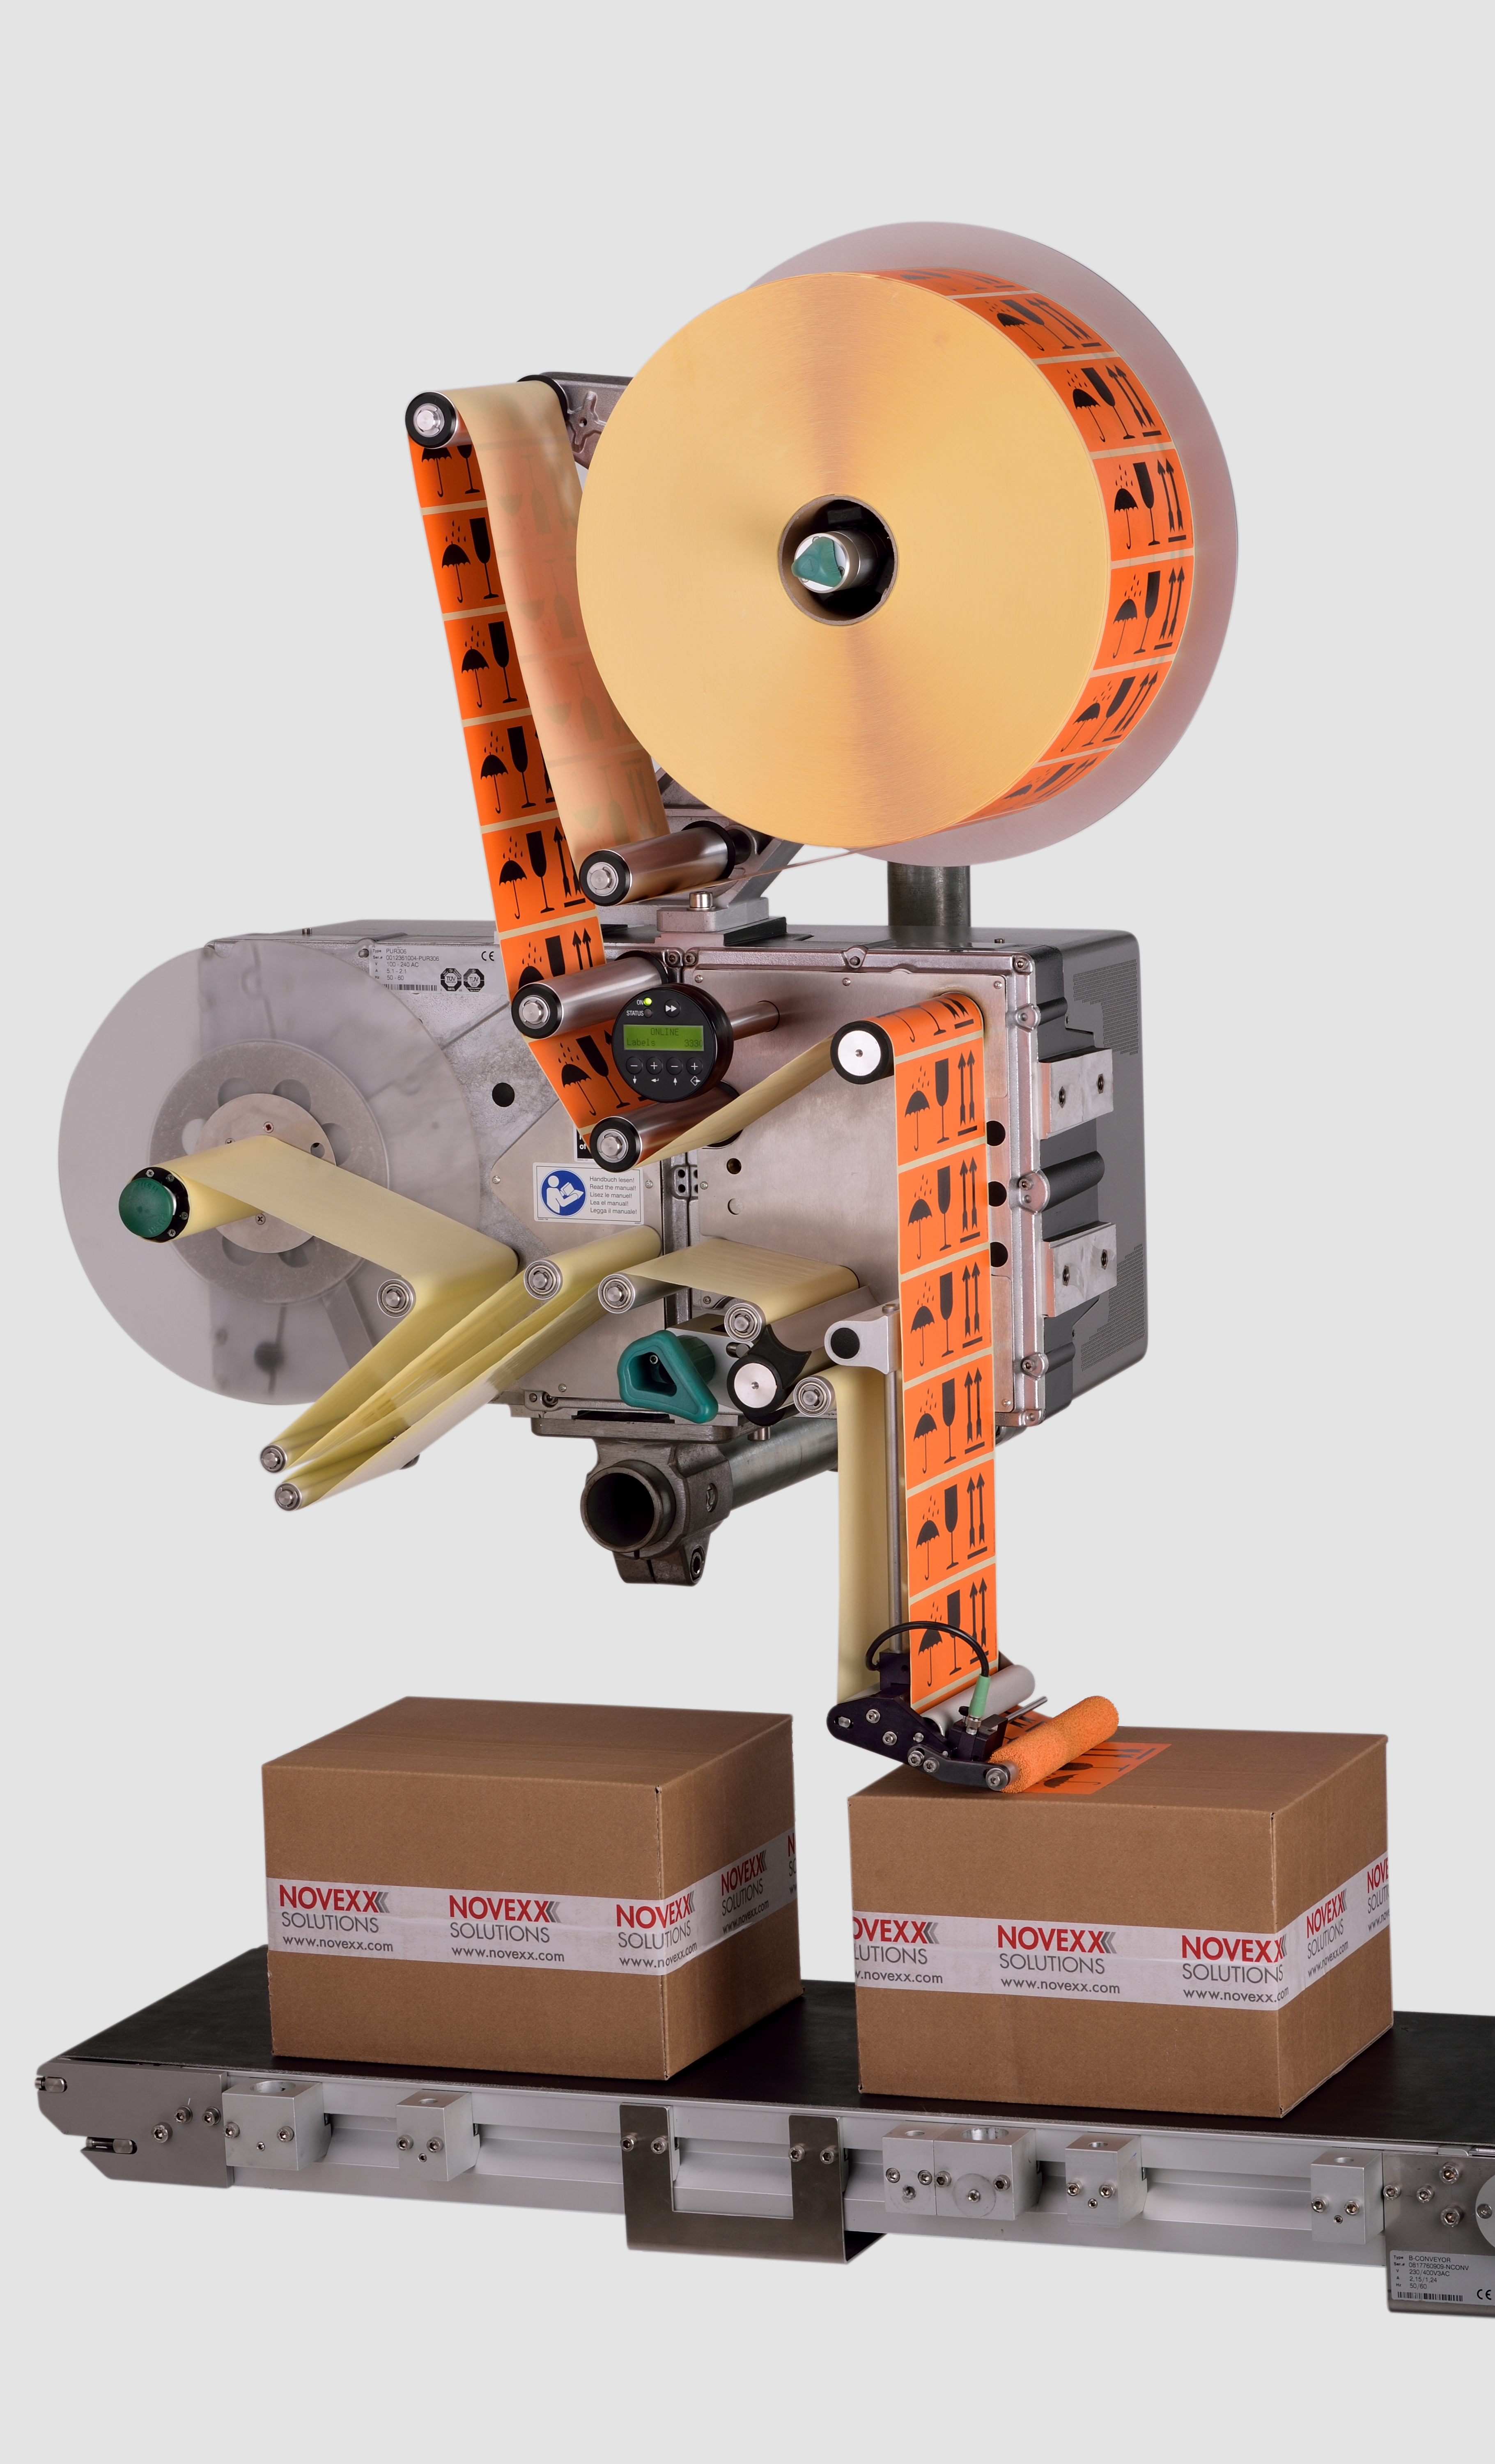 ALS modular labeling systems by NOVEXX Solutions